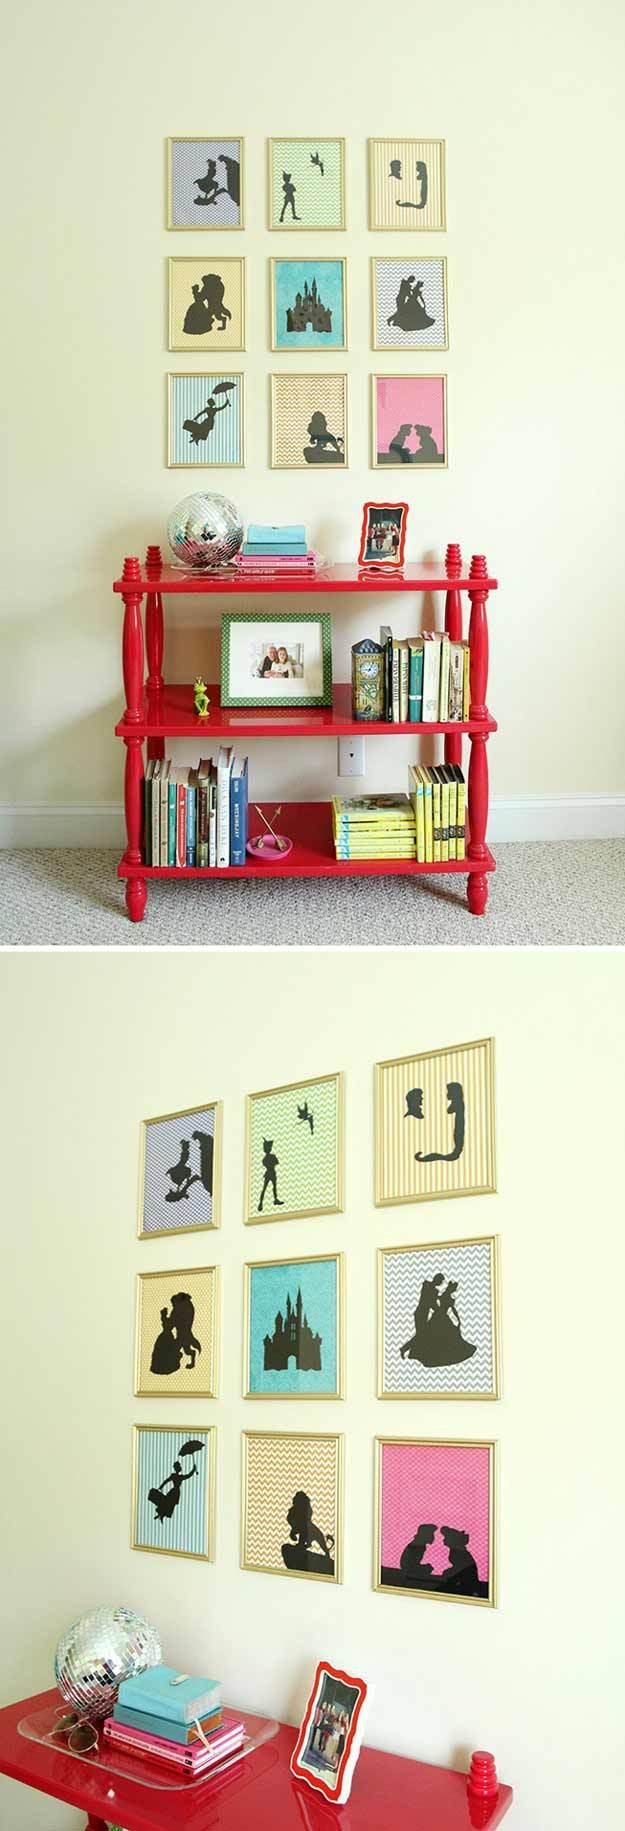 Best Disney Bedroom Designs For Teens Diy Projects Craft Ideas With Pictures